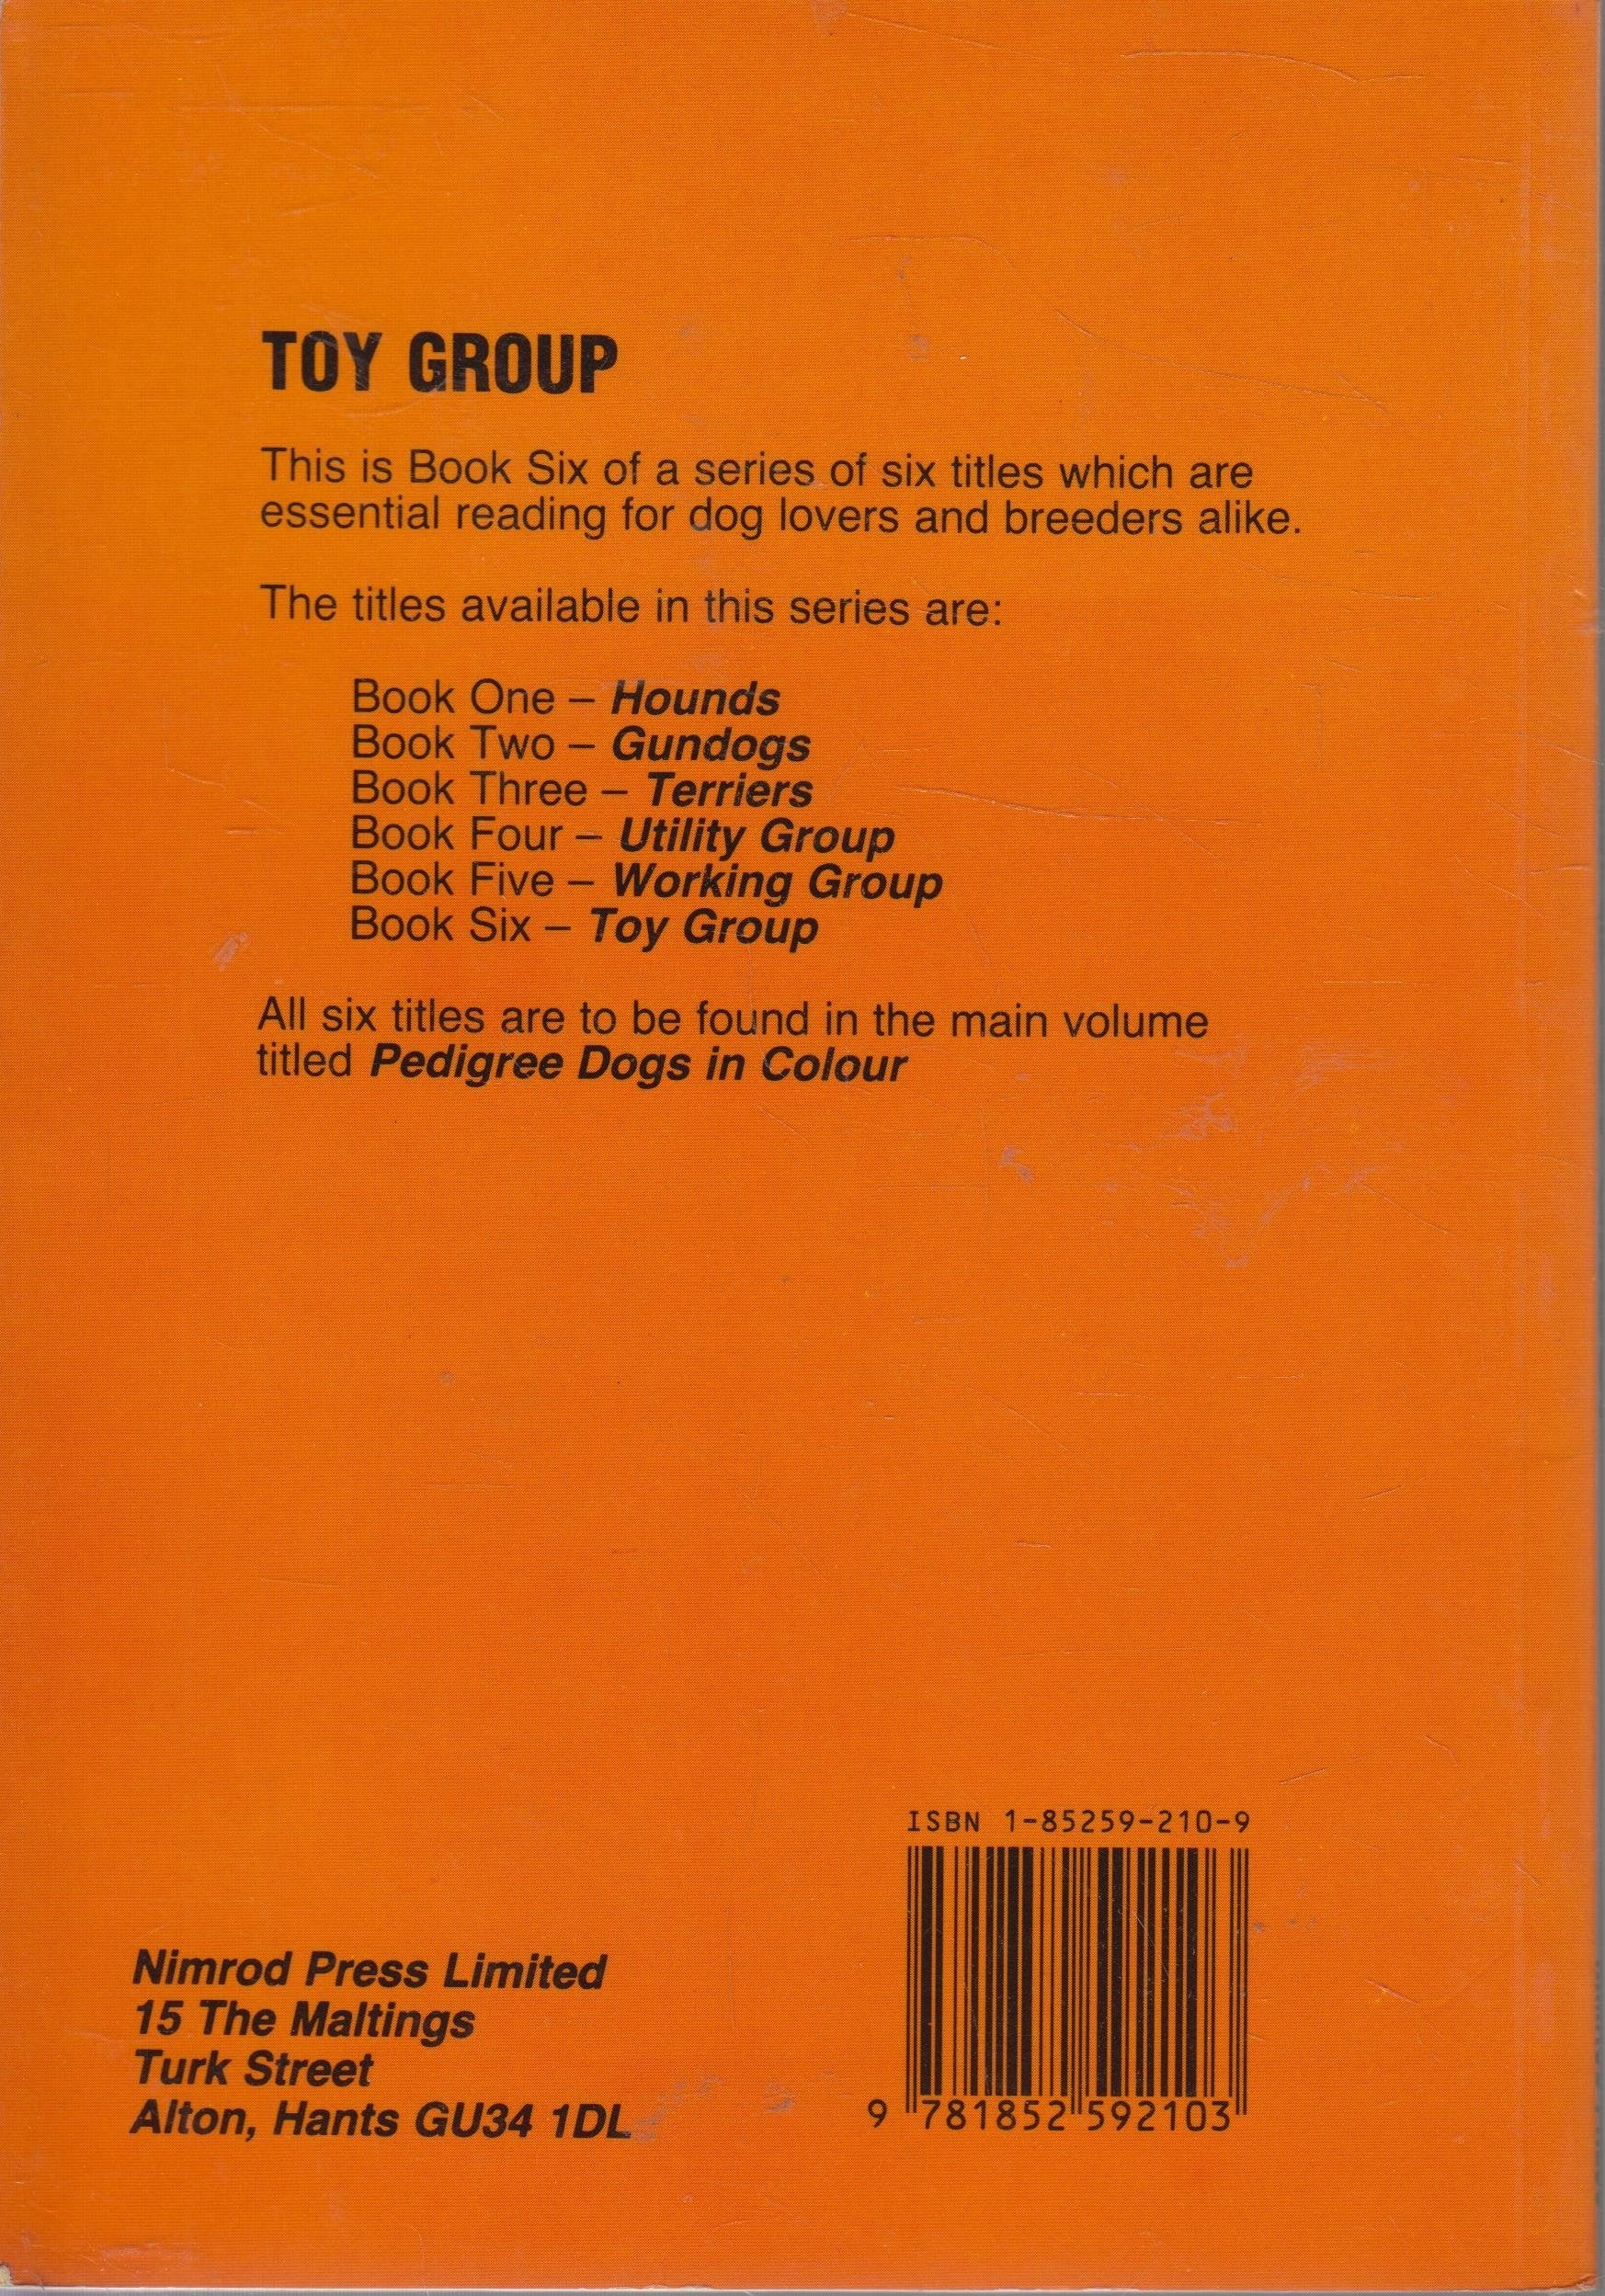 Pedigree Dogs In Colour Toy Group By Roy Hodrein Book 6